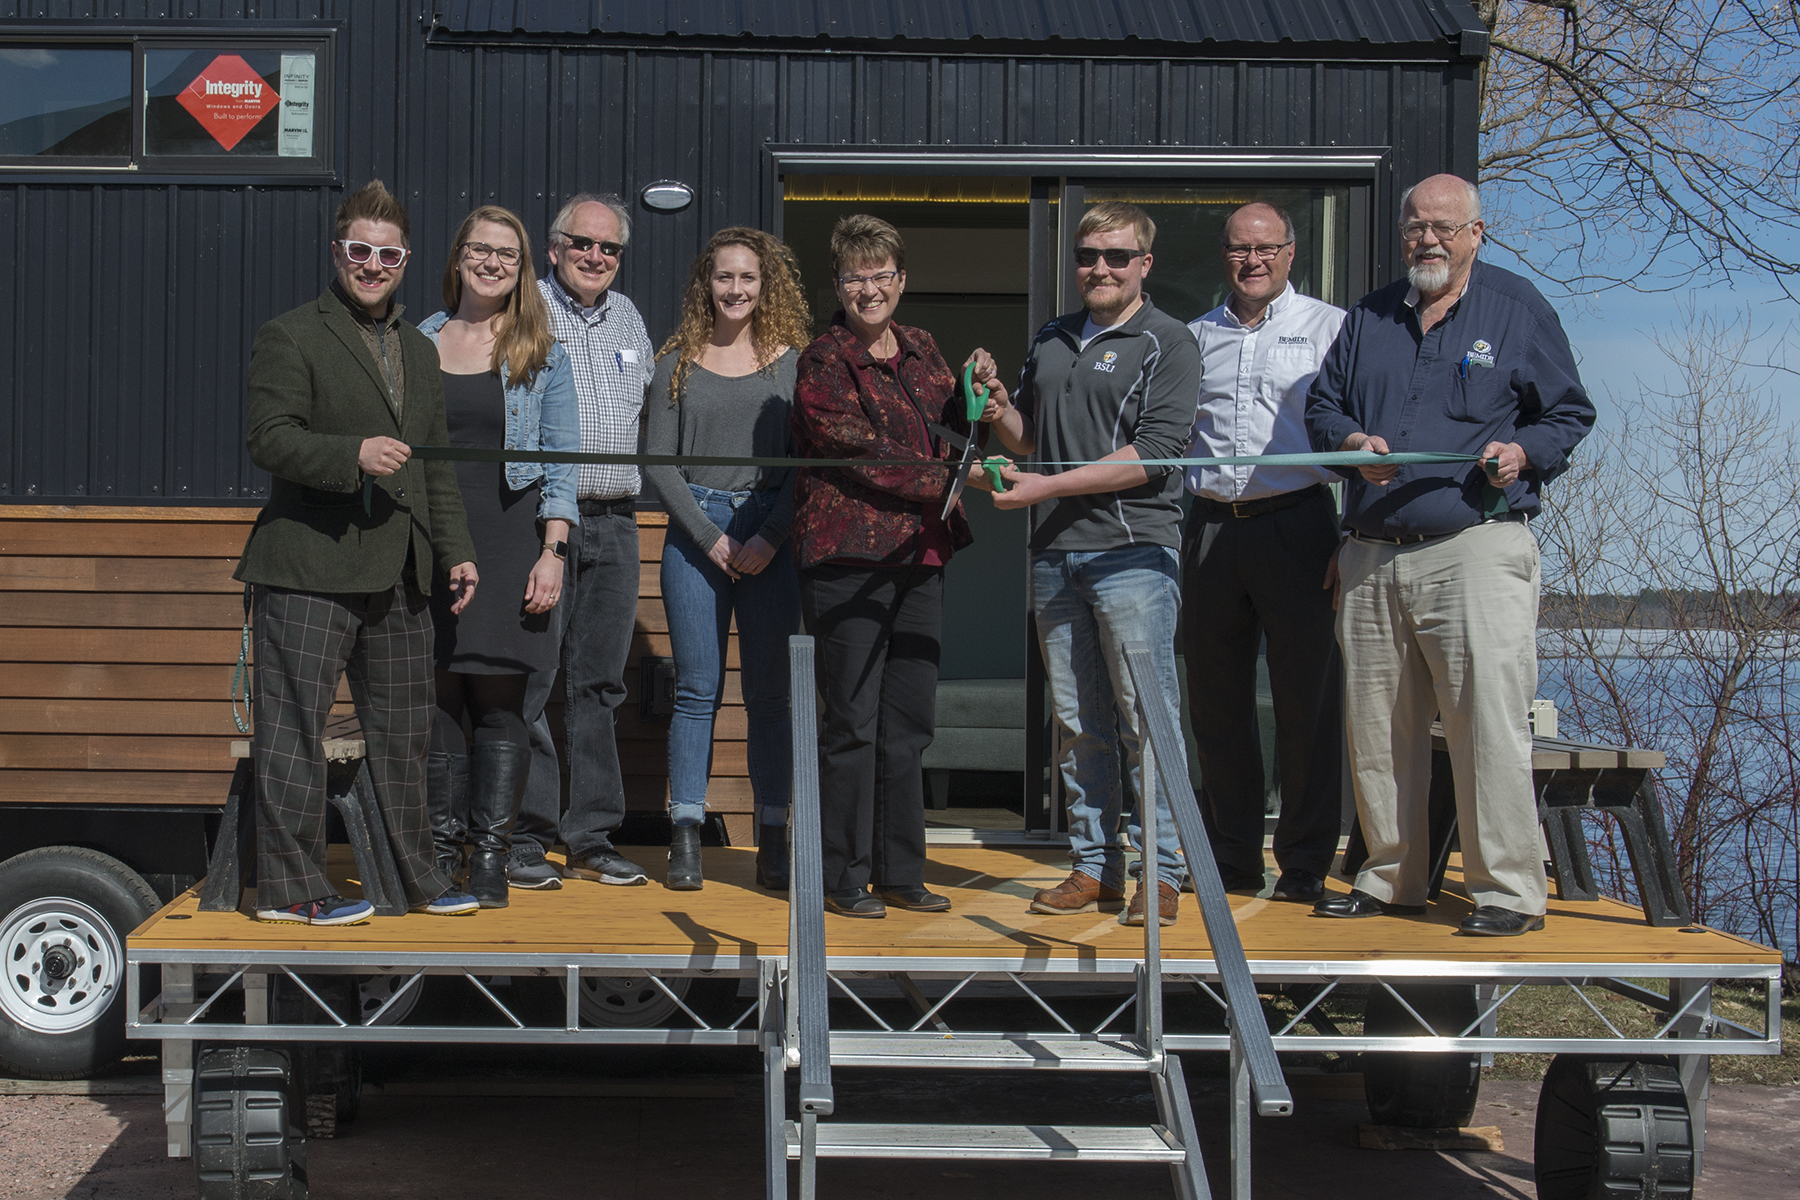 BSU Students, faculty and staff cut a ribbon at the completion of the tiny house